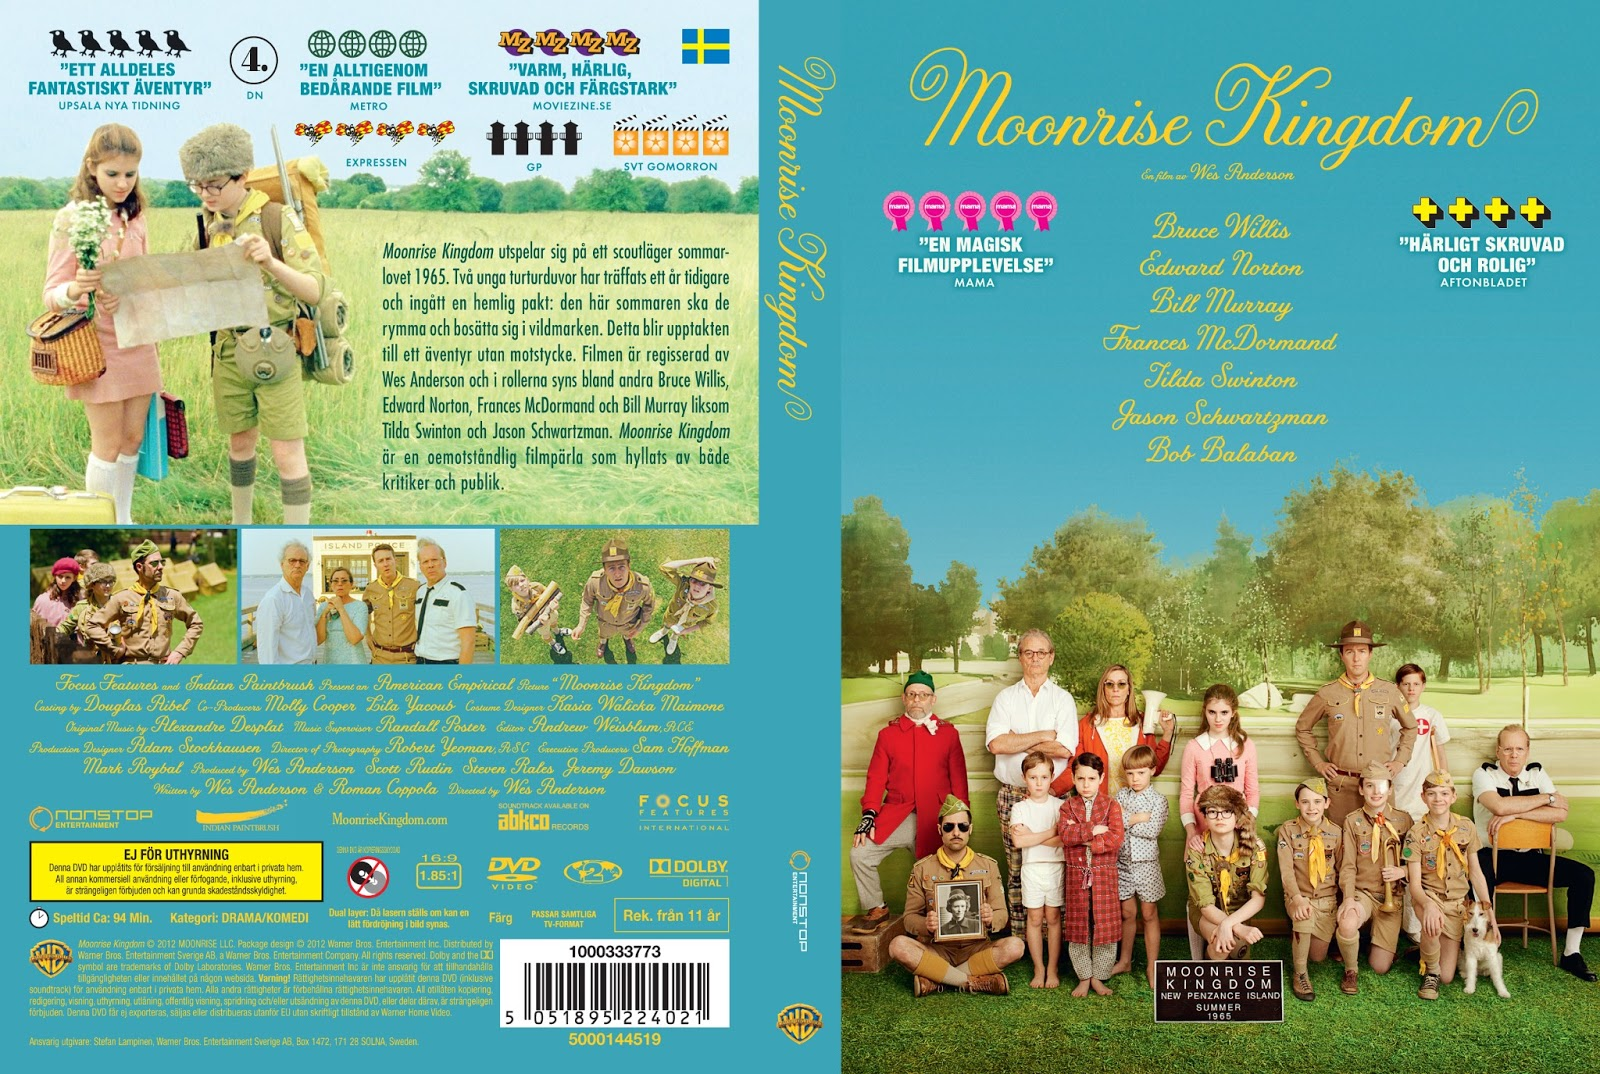 moonrise kingdom review outline color analysis moonrise kingdom review outline name: per directions following the outline below, write a grade-appropriate, grammatically correct film review focusing on.